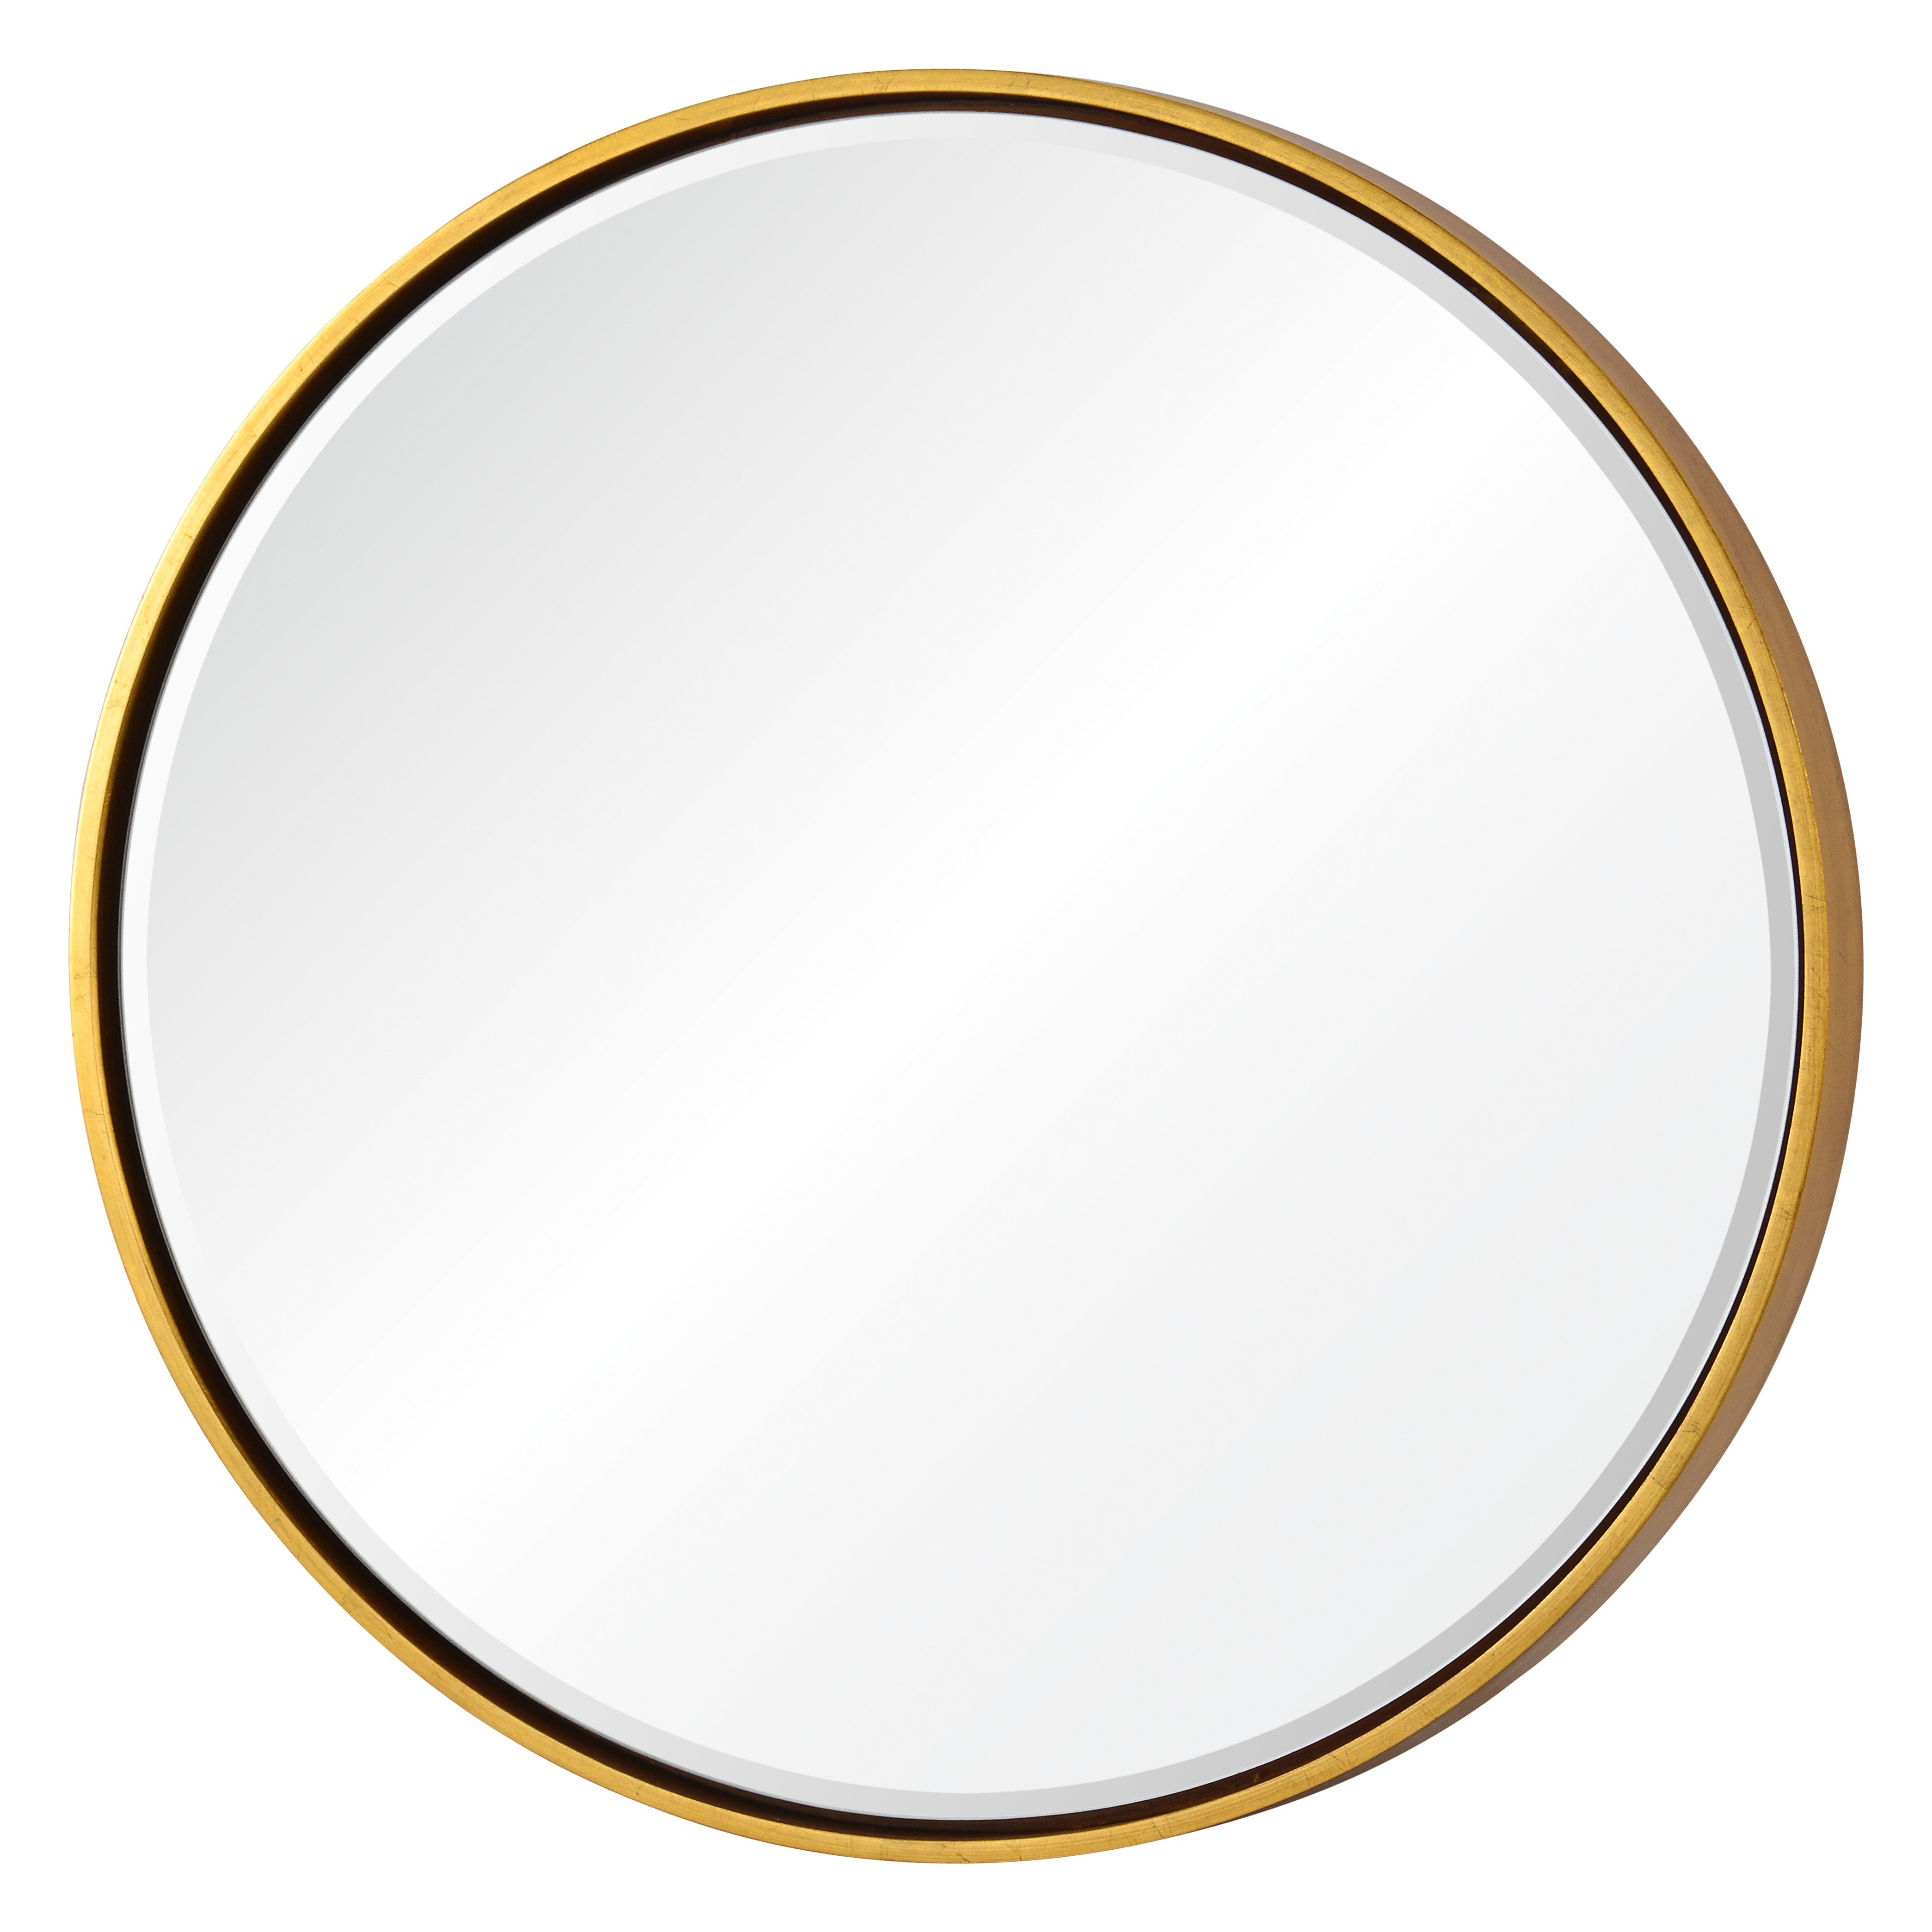 Jamie Modern & Contemporary Beveled Wall Mirror throughout Modern & Contemporary Beveled Wall Mirrors (Image 18 of 30)